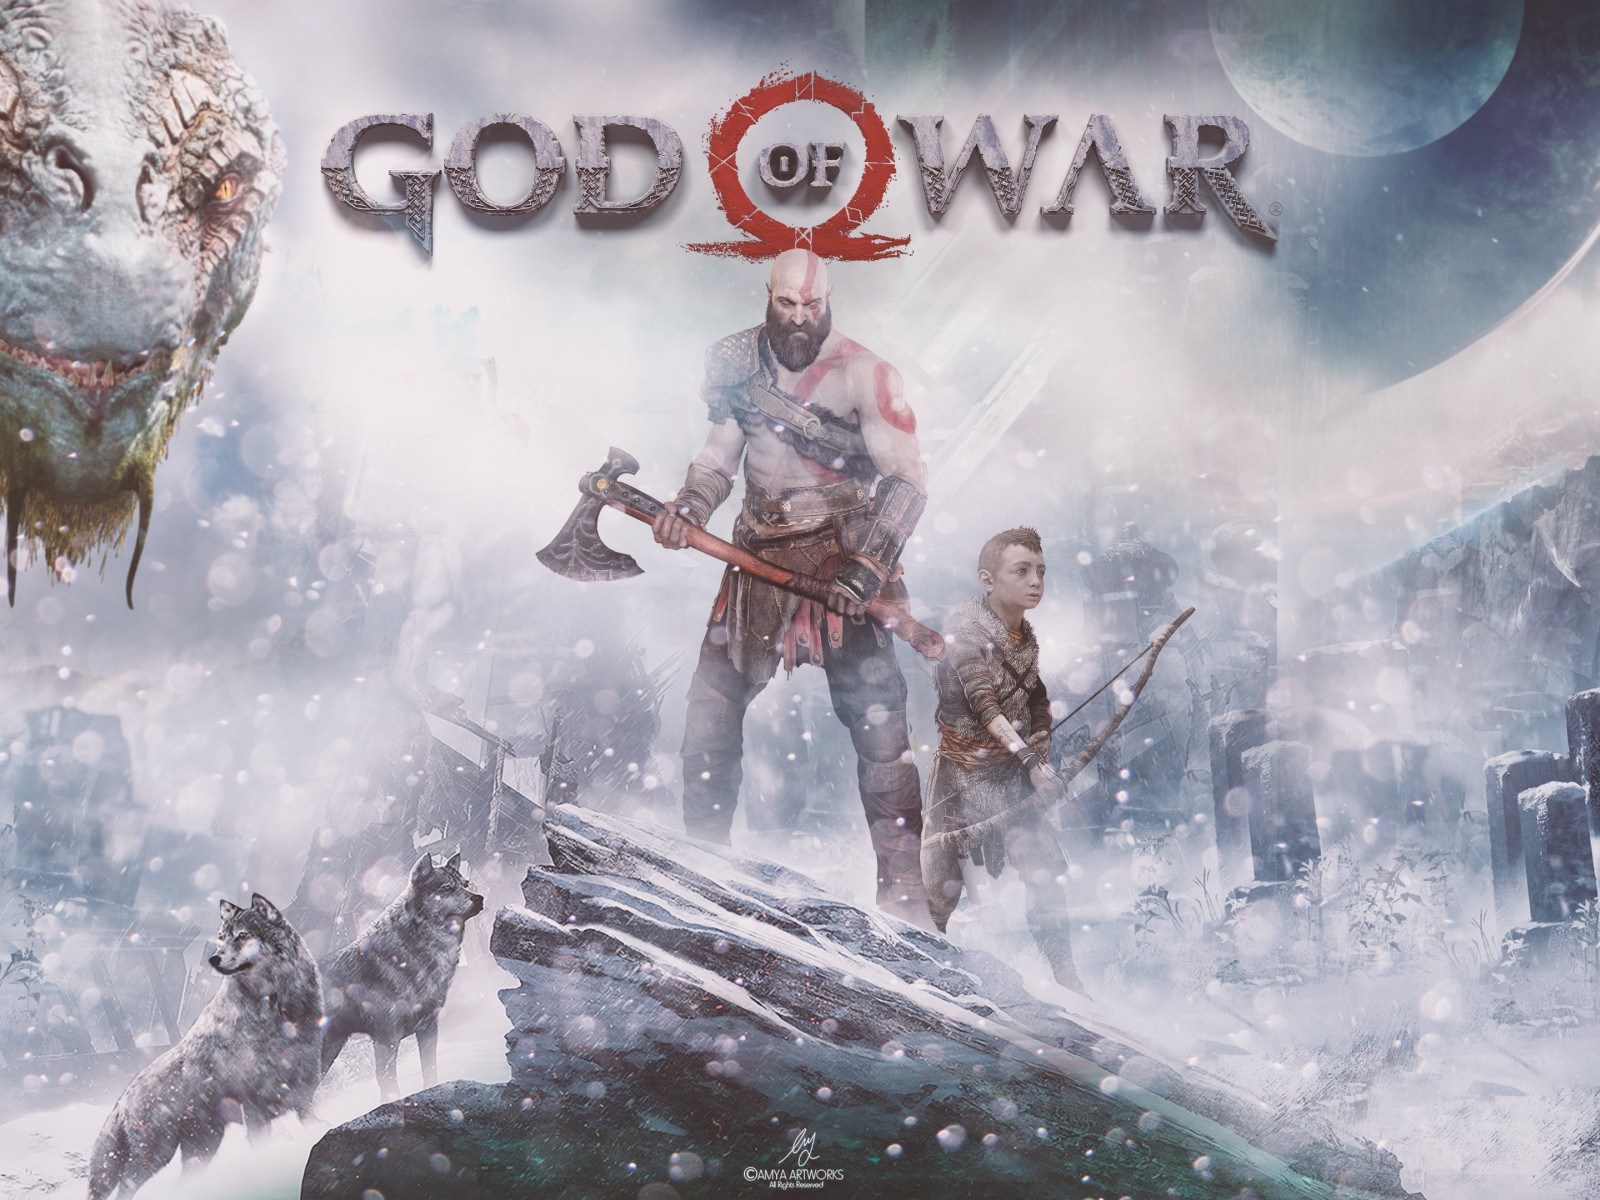 God Of War PS4 4K HD Wallpaper 1600x1200   HD Wallpaper 1600x1200